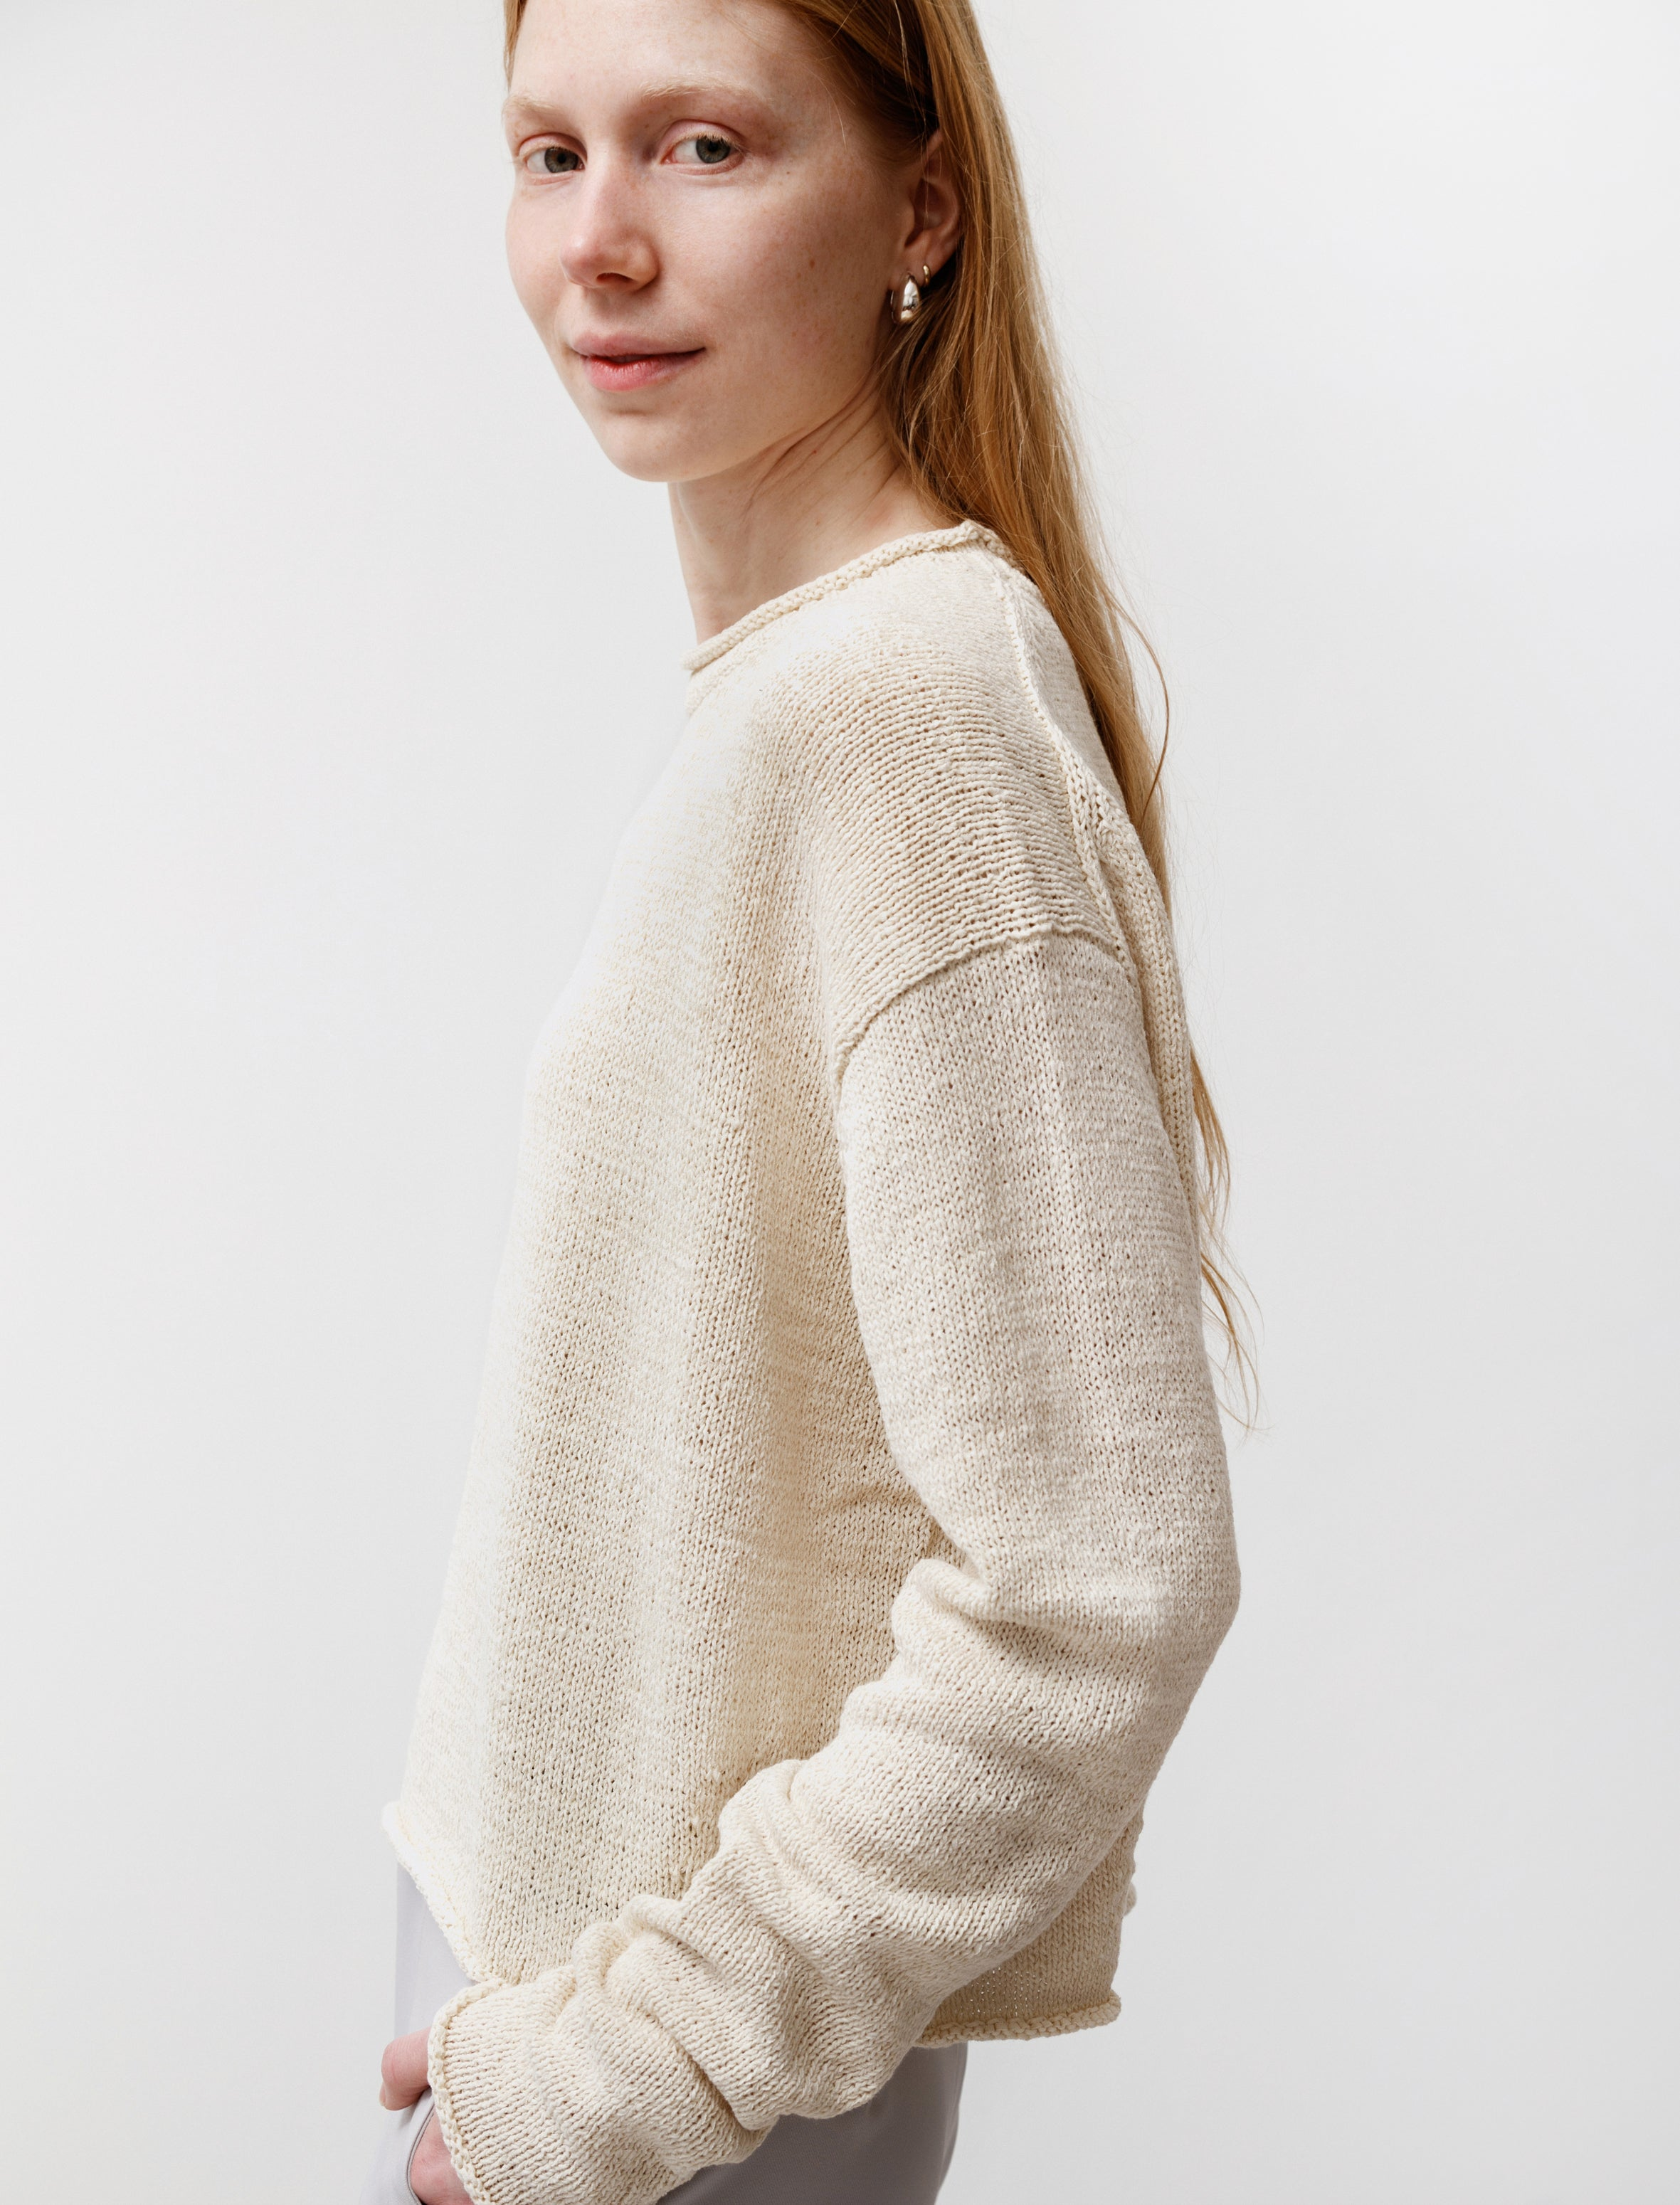 Studio Nicholson Ruiz Ribbon Knit Cream